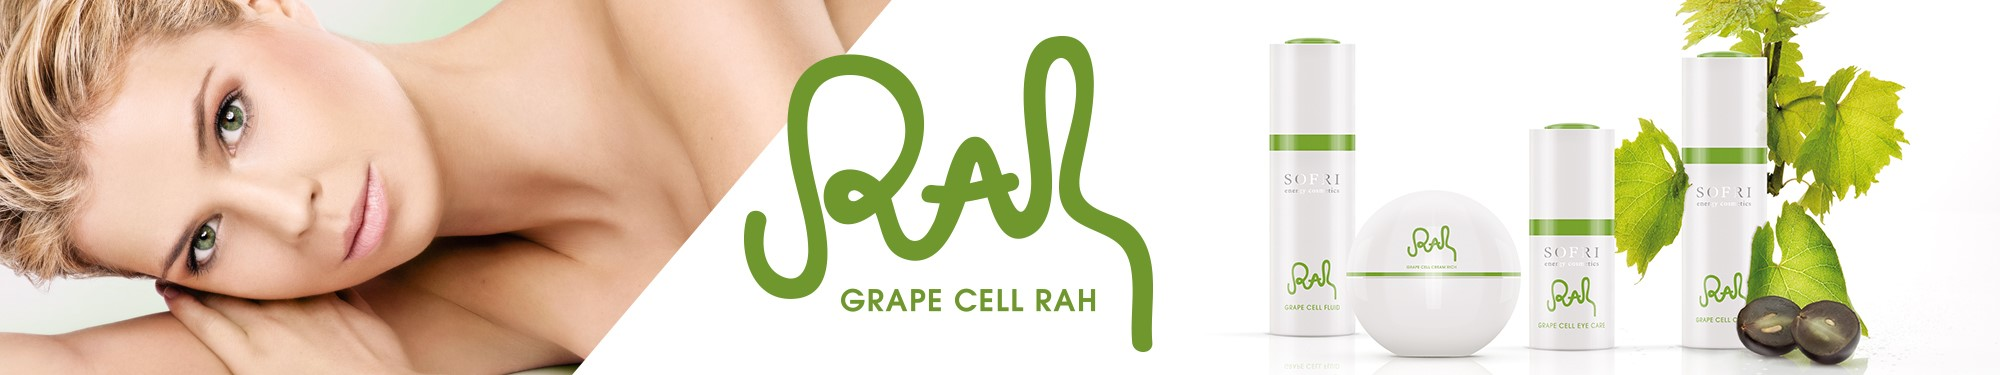 Grape Cell Rah